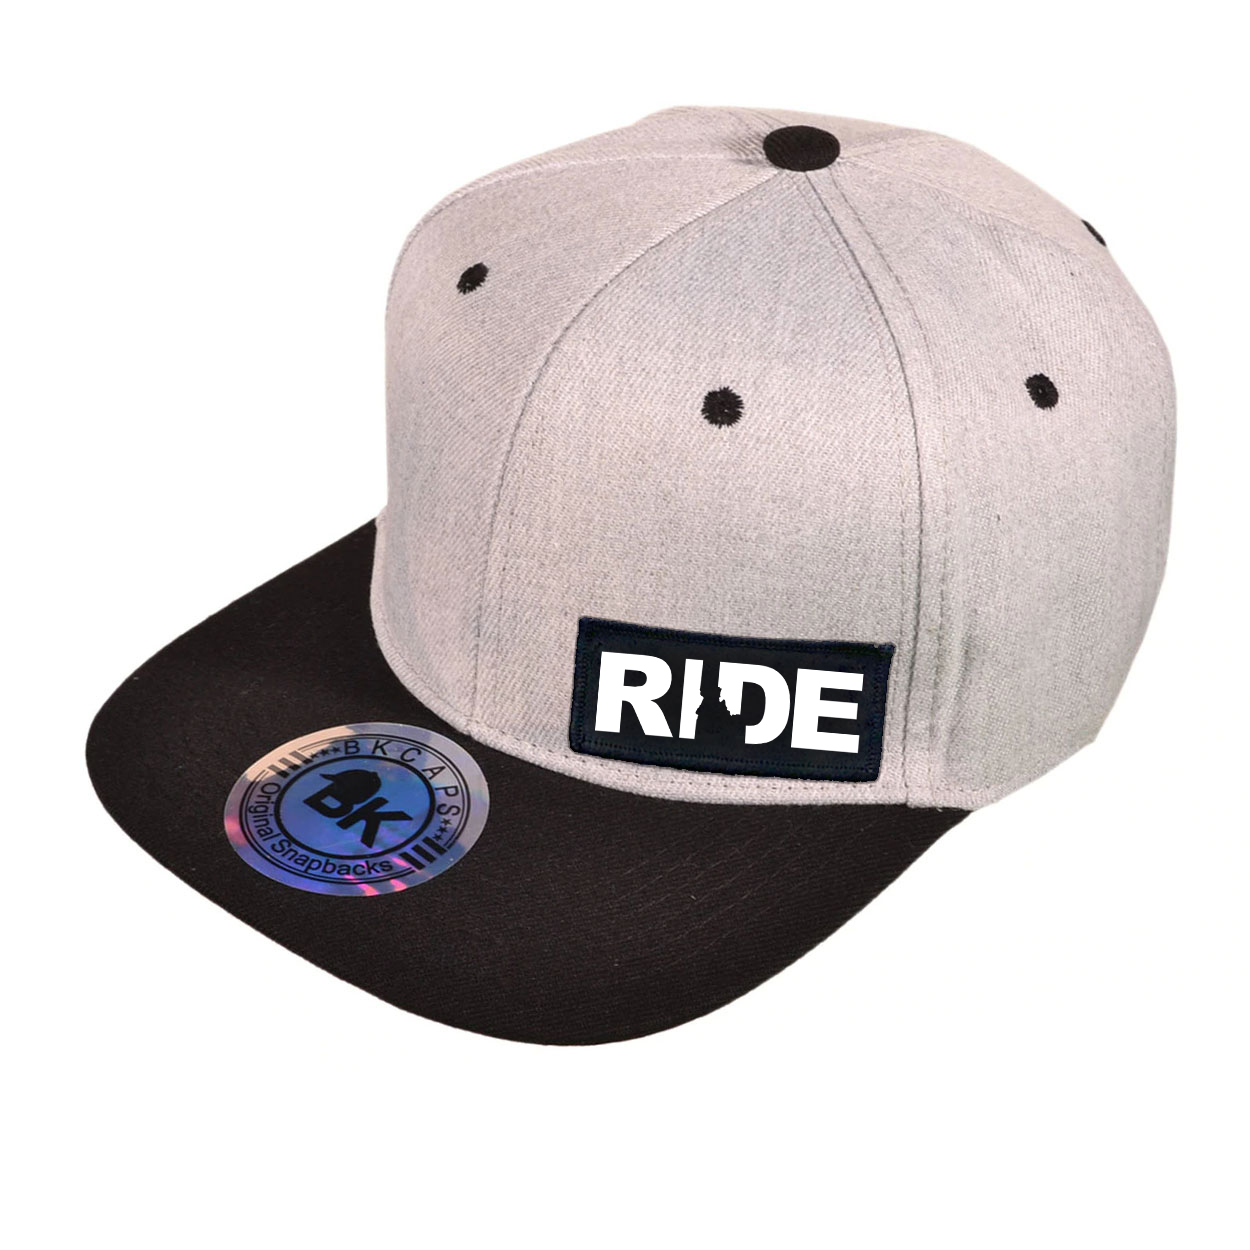 Ride Idaho Night Out Woven Patch Snapback Flat Brim Hat Heather Gray/Black (White Logo)